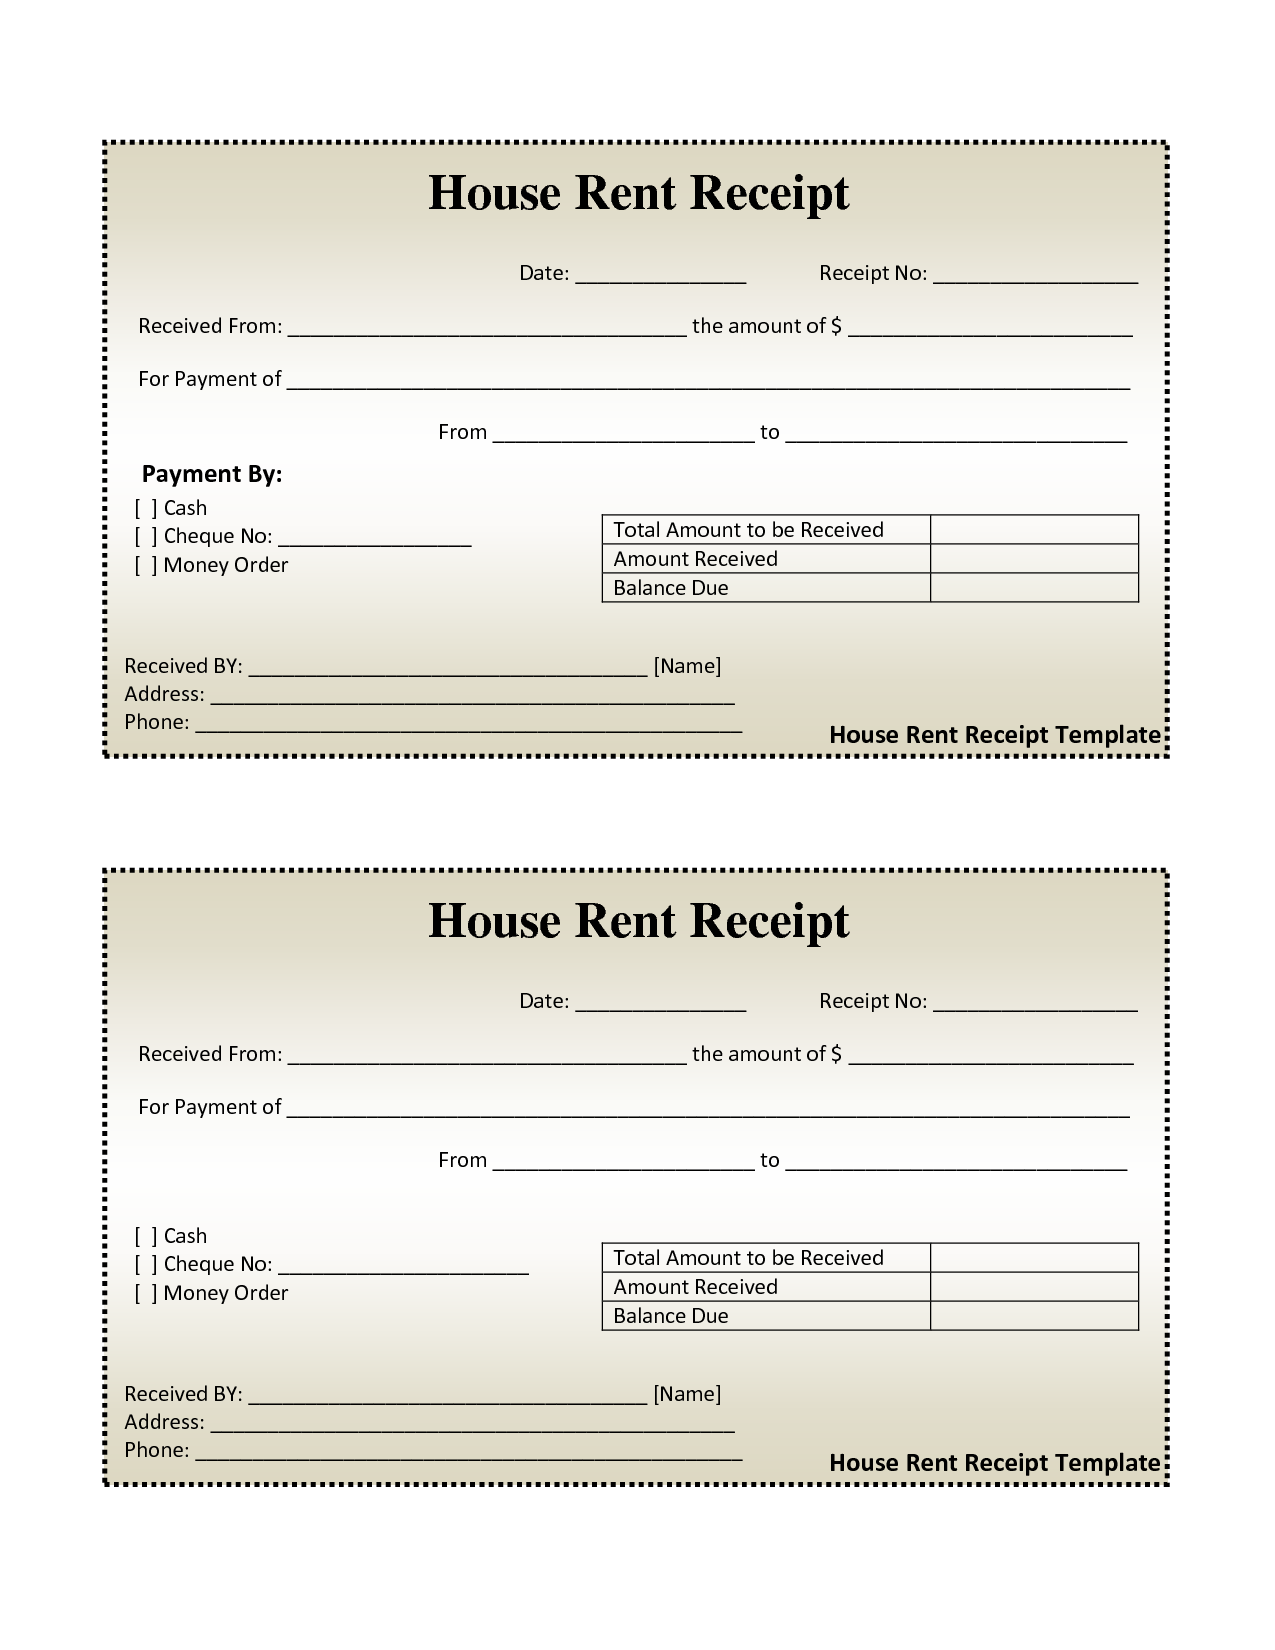 doc room rent receipt rent receipt template word rent slip format house rent receipt templatehome rent receipt room rent receipt